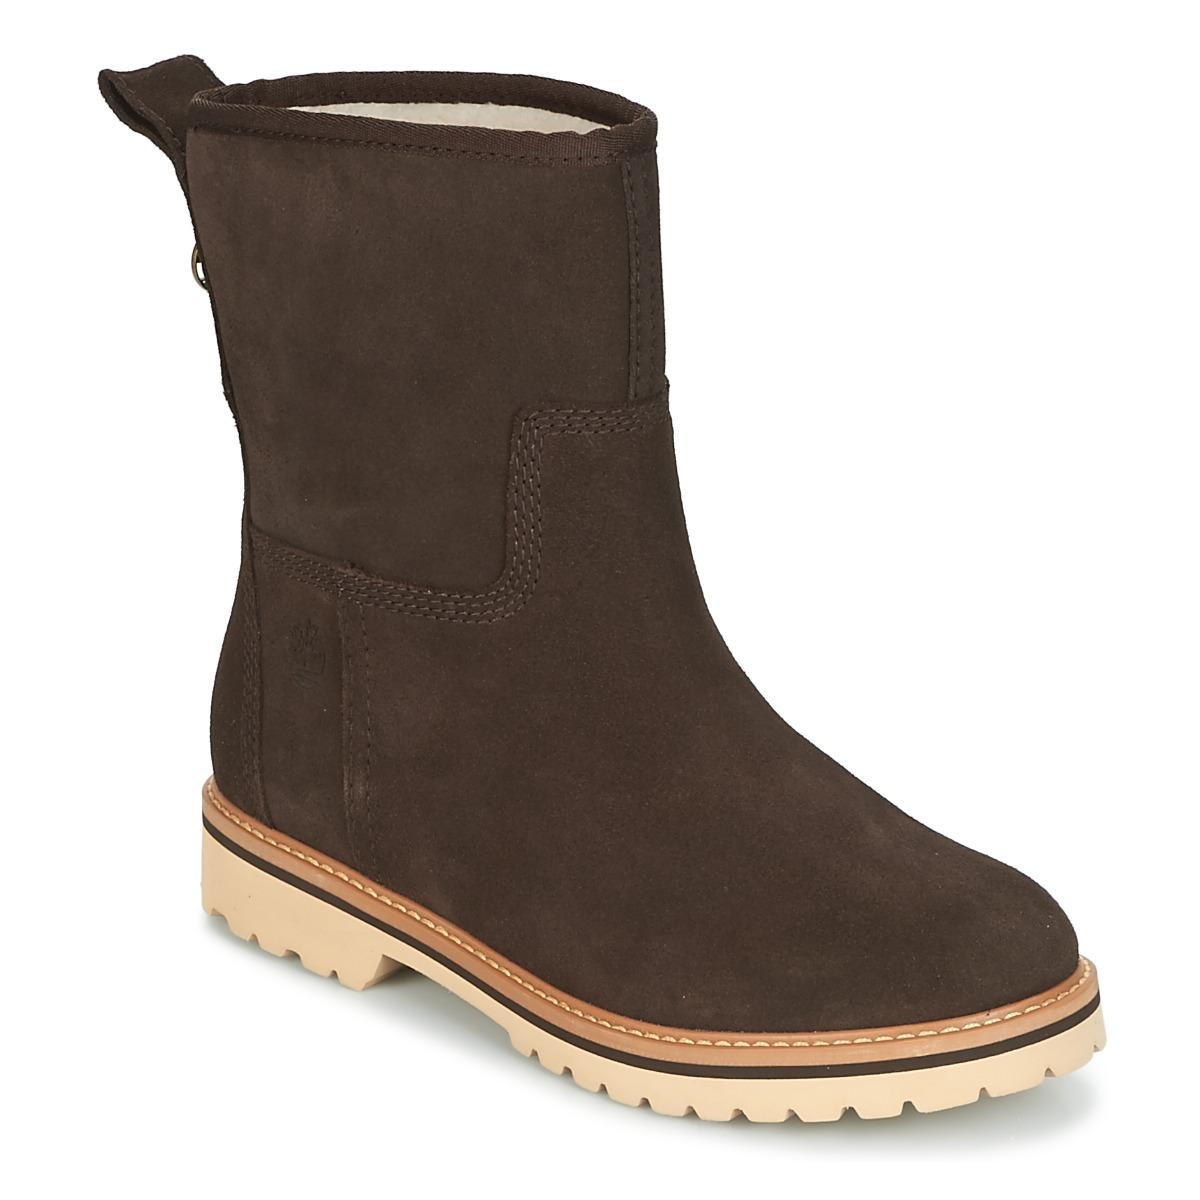 Outlet Amazon Timberland CHAMONIX VALLEWINTER CHOCOLATE BR women's High Boots in Cheap Sale Footlocker High-Quality Cheap u7sPp